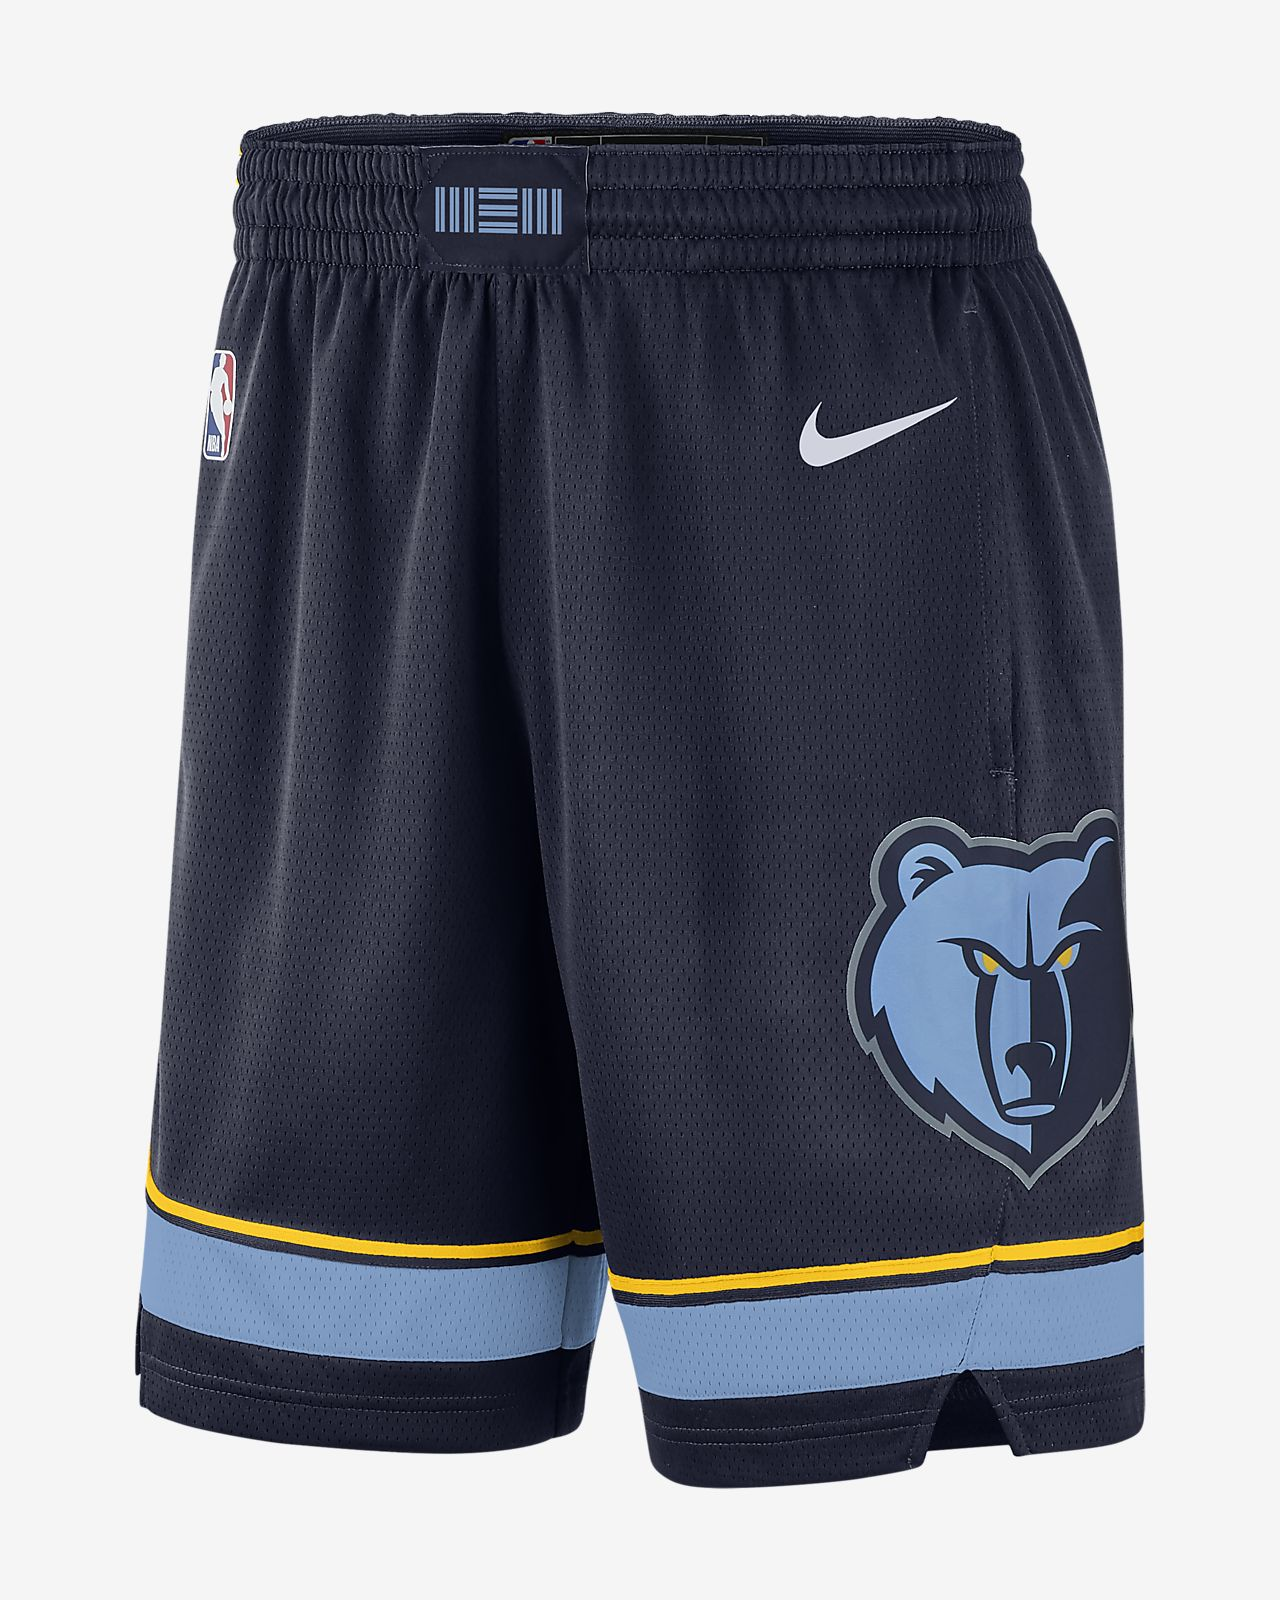 Memphis Grizzlies Icon Edition Swingman Men's Nike NBA Shorts